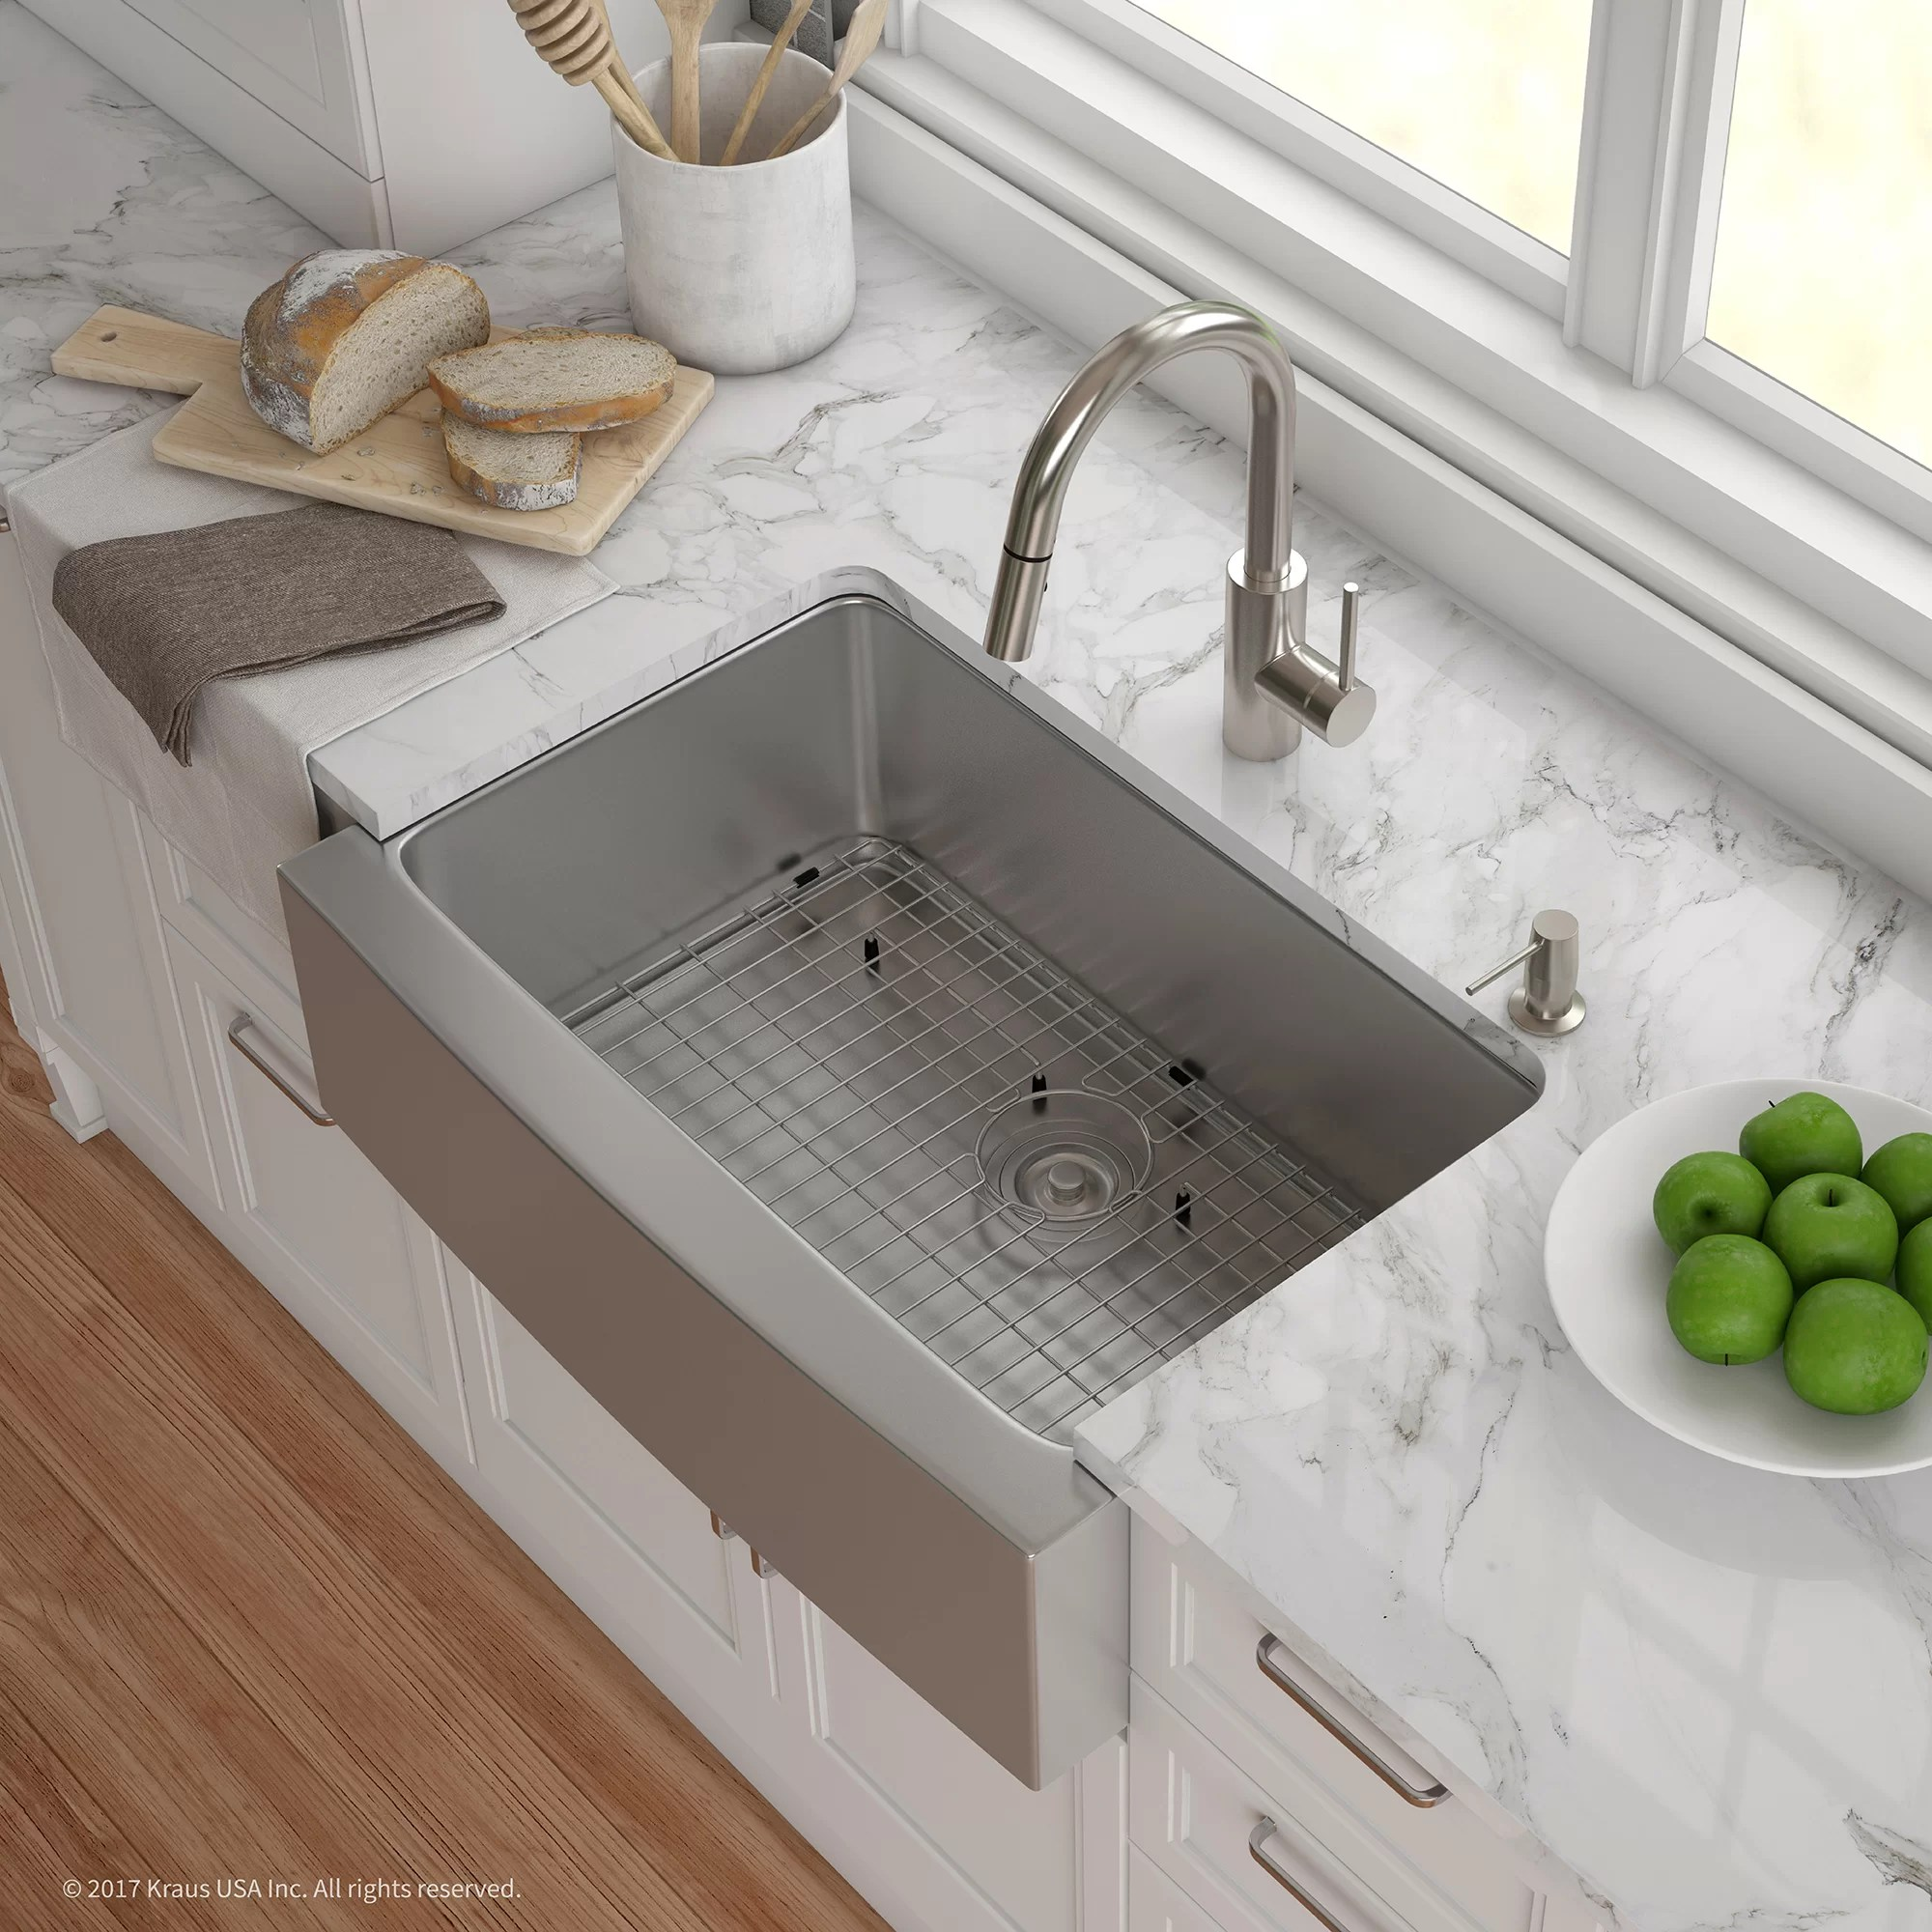 handmade series 29 75 l x 20 75 w farmhouse kitchen sink with faucet and soap dispenser